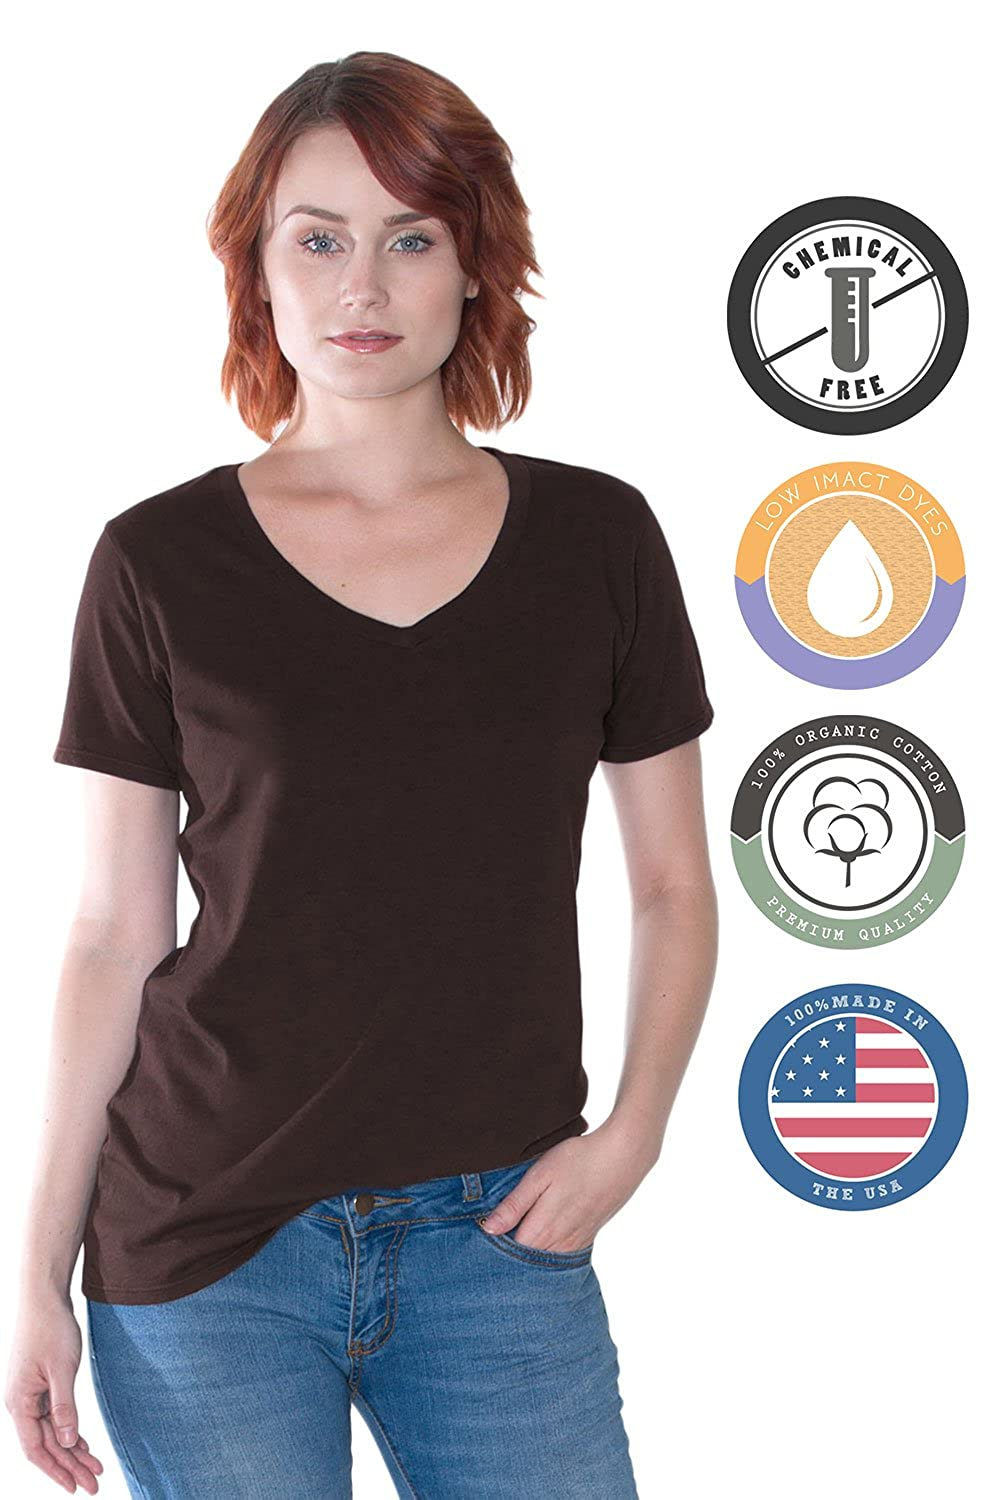 25b04d22cae In Touch Organic Cotton V-Neck Tee, Non-GMO, Eco Friendly, Made in The USA  at Amazon Women's Clothing store: